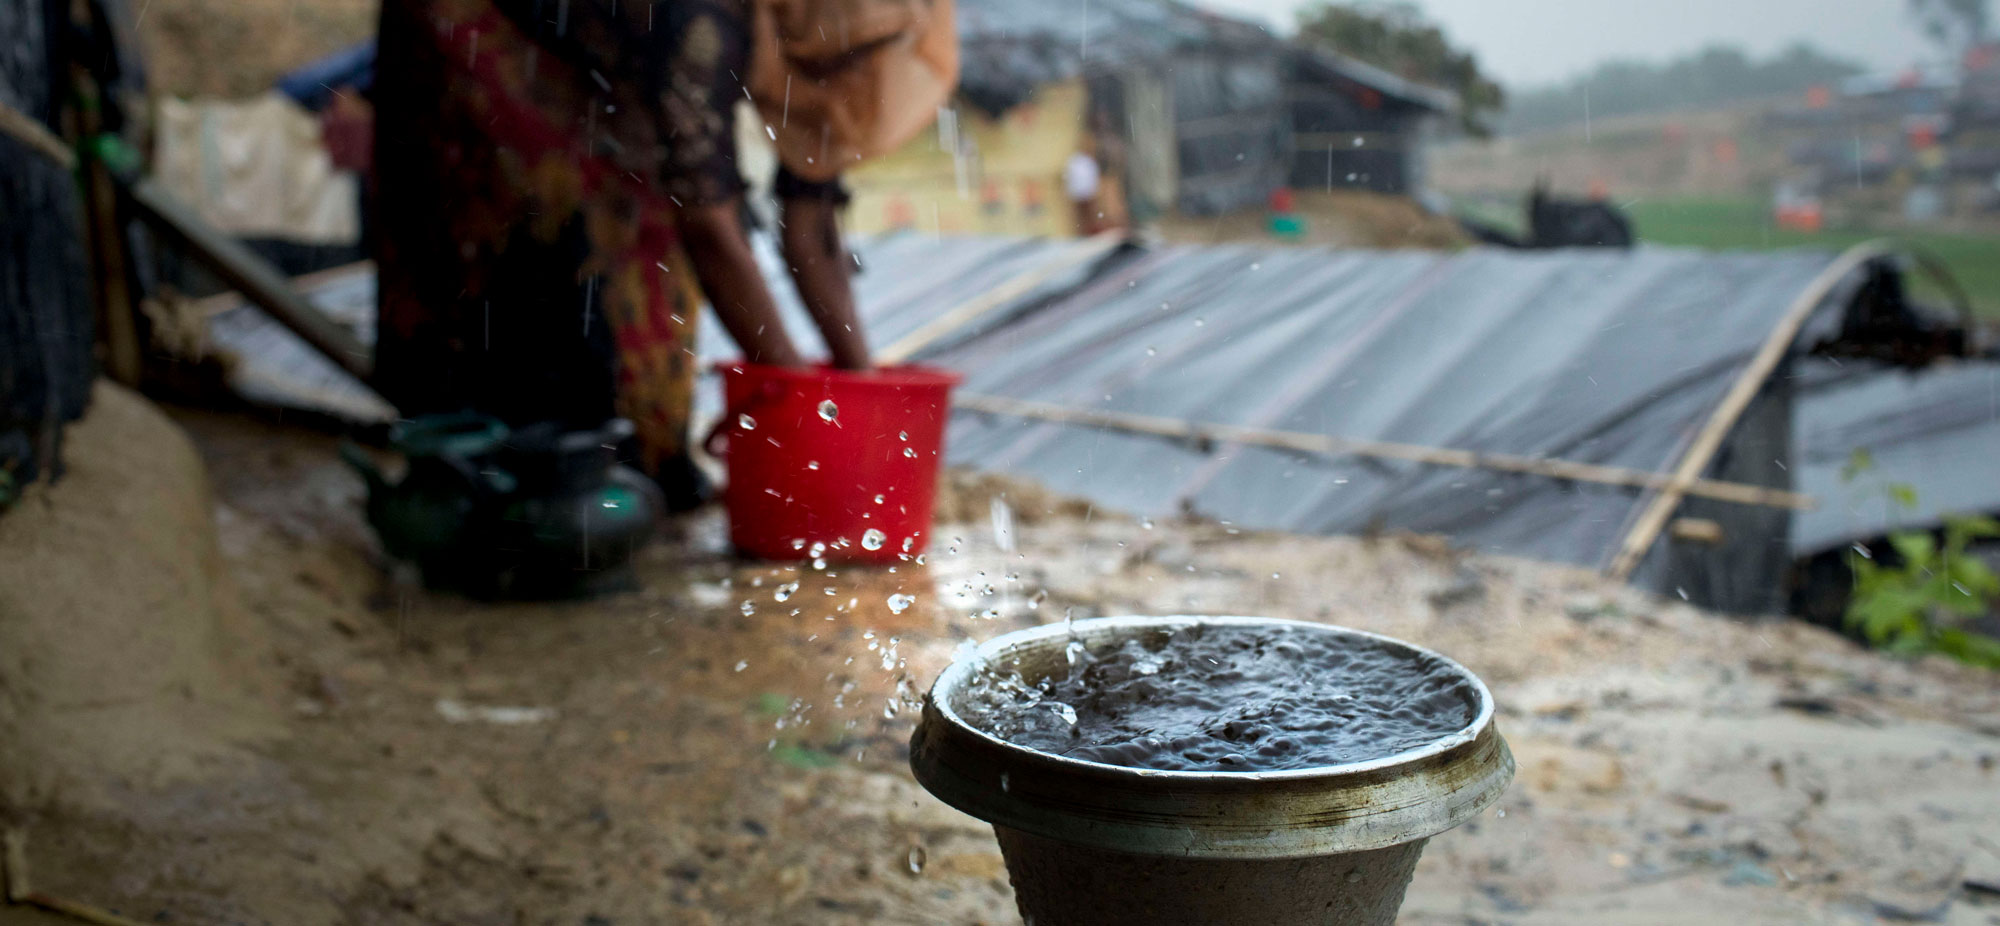 A Rohingya refugee collects drinking water in heavy rain at Ukhiya, Cox's Bazar (Photo by K M Asad/Getty)